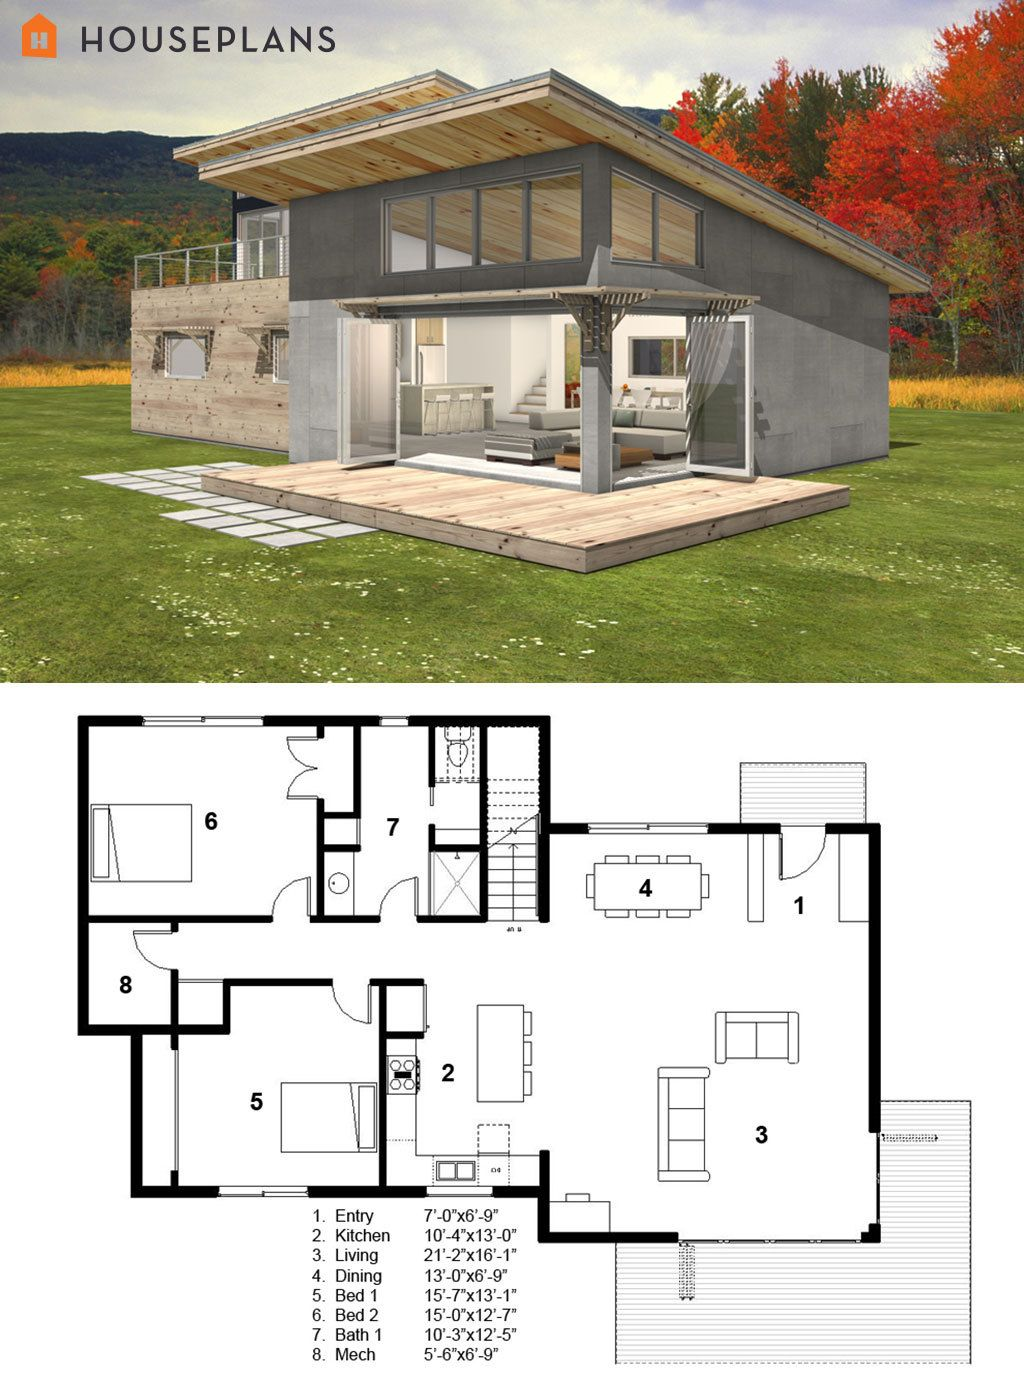 Small modern cabin house plan by freegreen energy for Energy efficient house plans designs